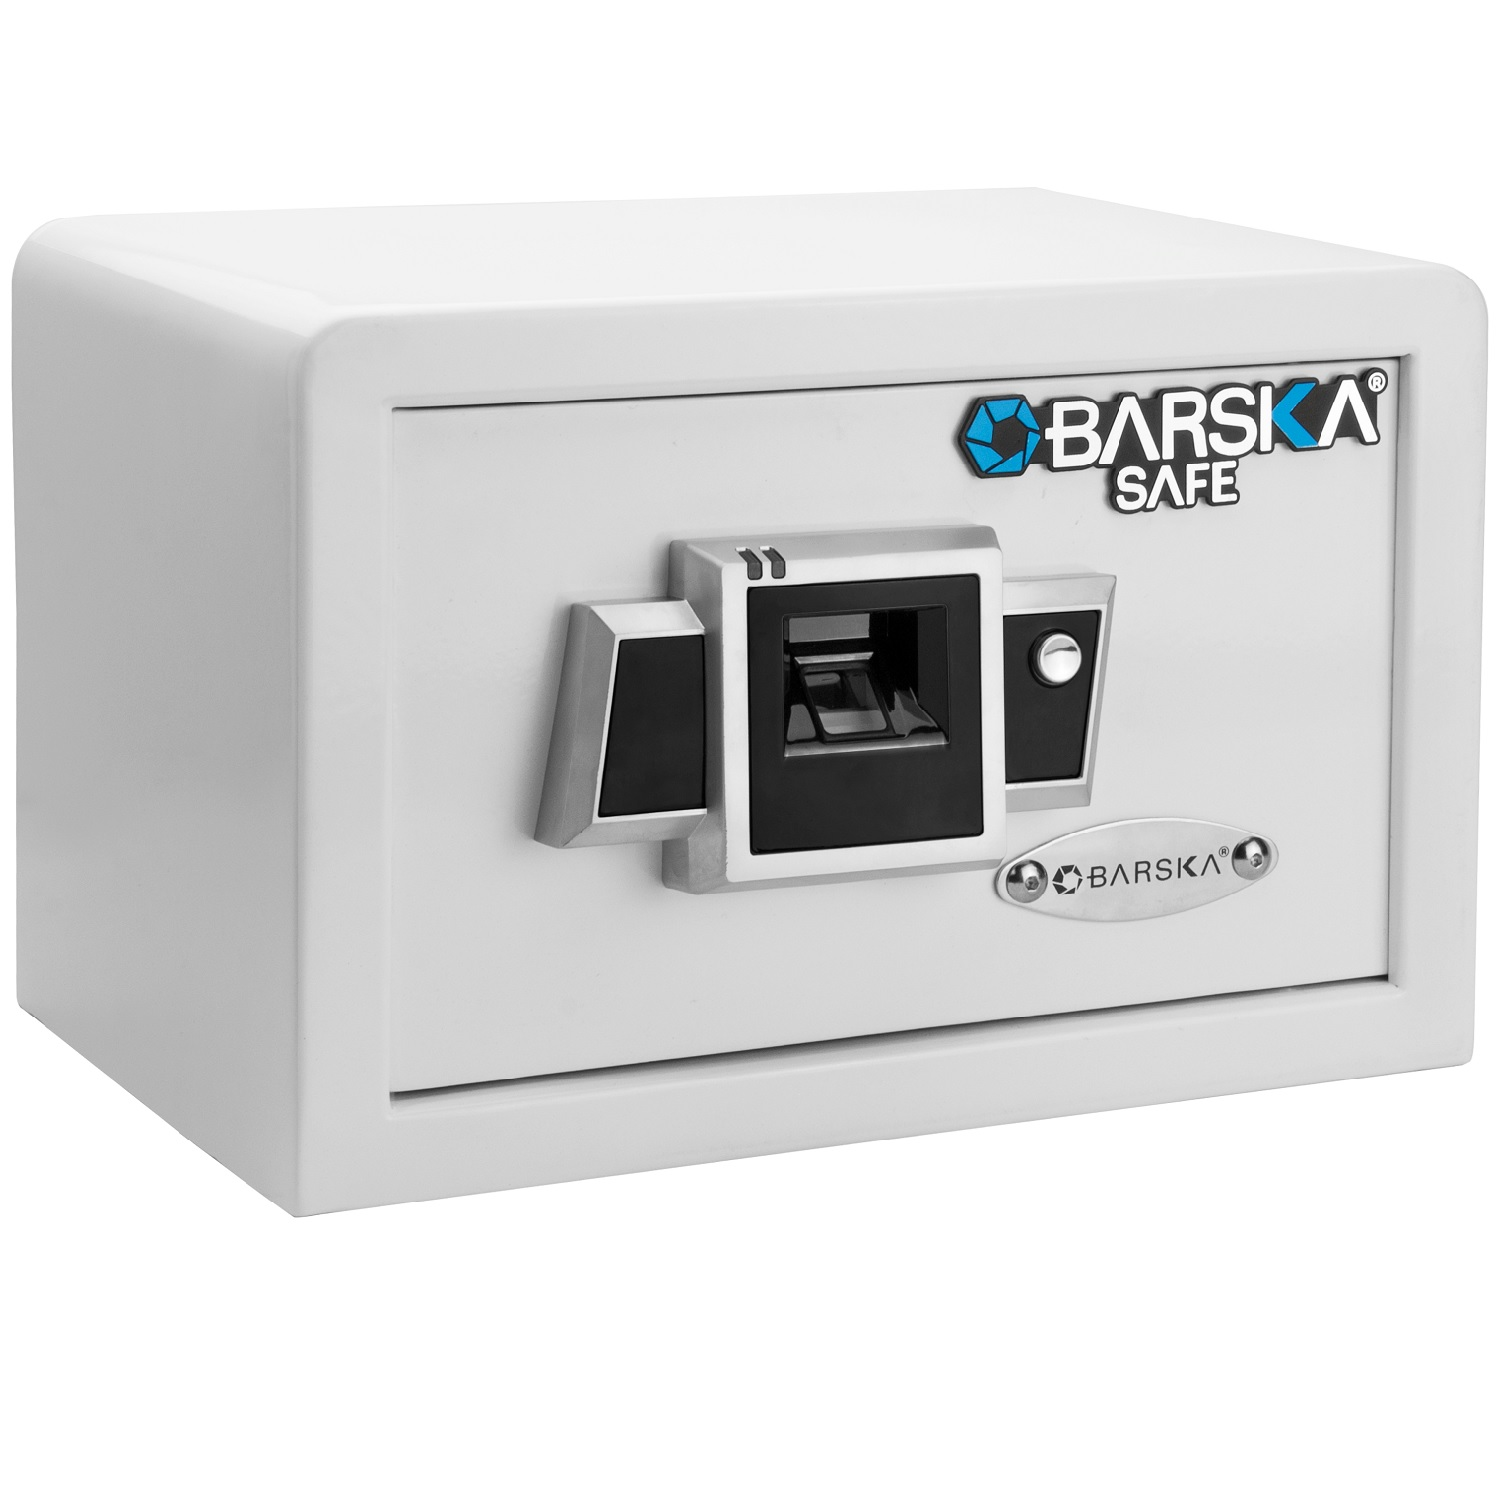 Barska BX100 Compact Biometric Security Safe-White